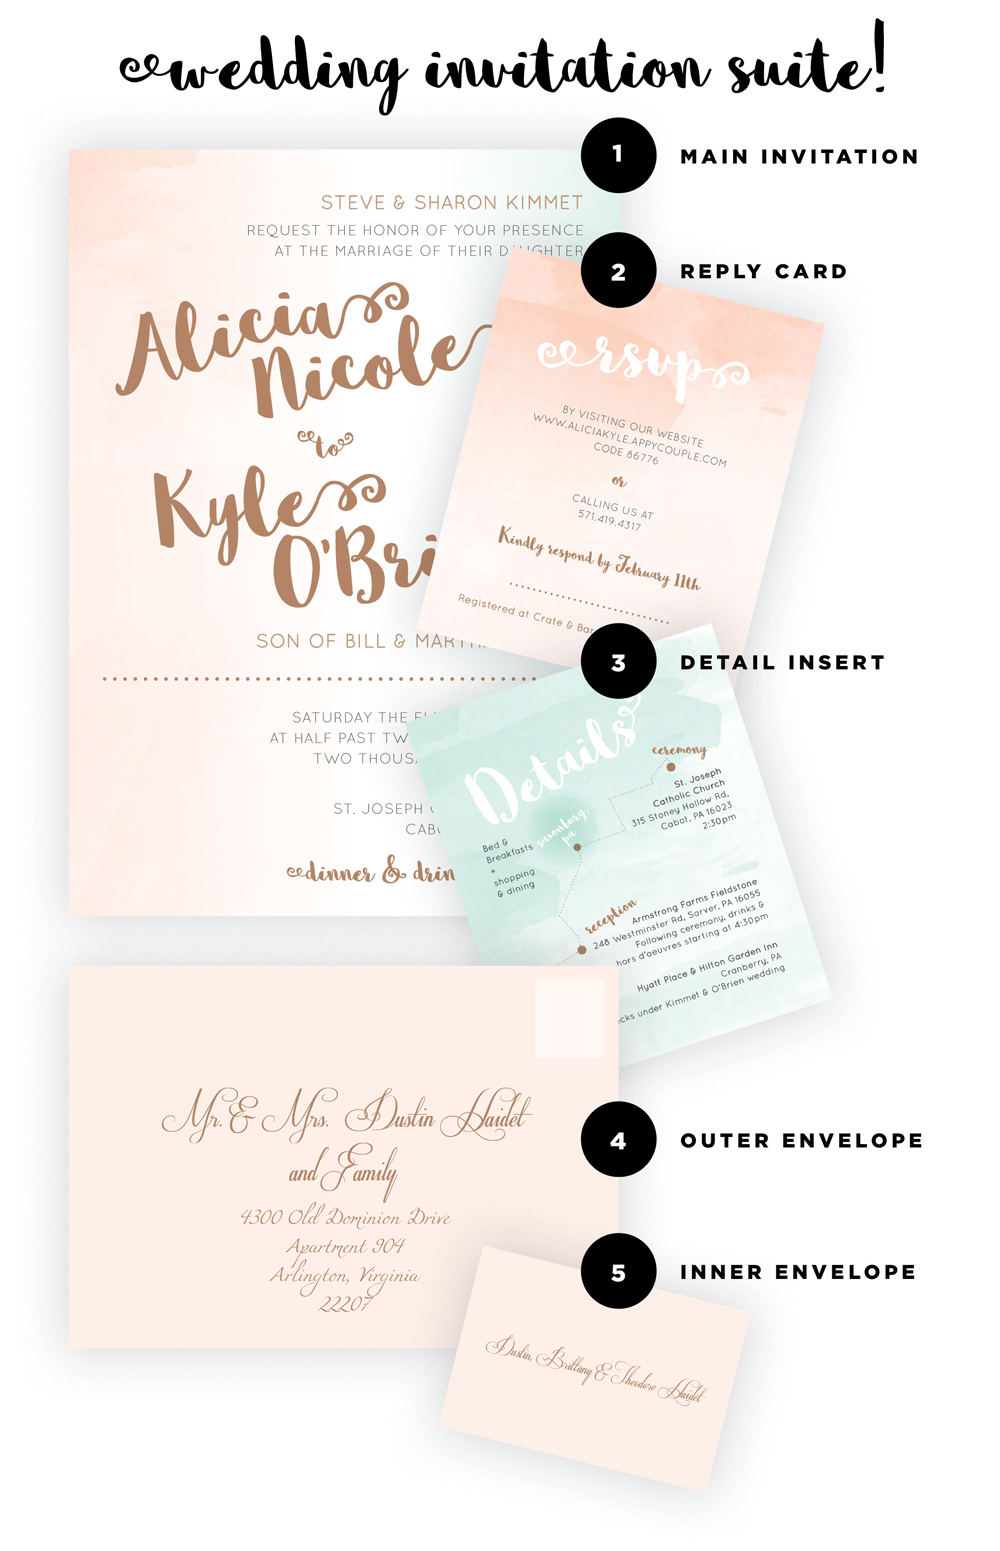 There are many elements of a wedding invitation suite. I will go over the essential parts along with the secondary elements to help you know what is needed when crafting your wedding invitation suite. The parts include the main invitation, detail insert, RSVP, main envelope & more, check out the full details here!